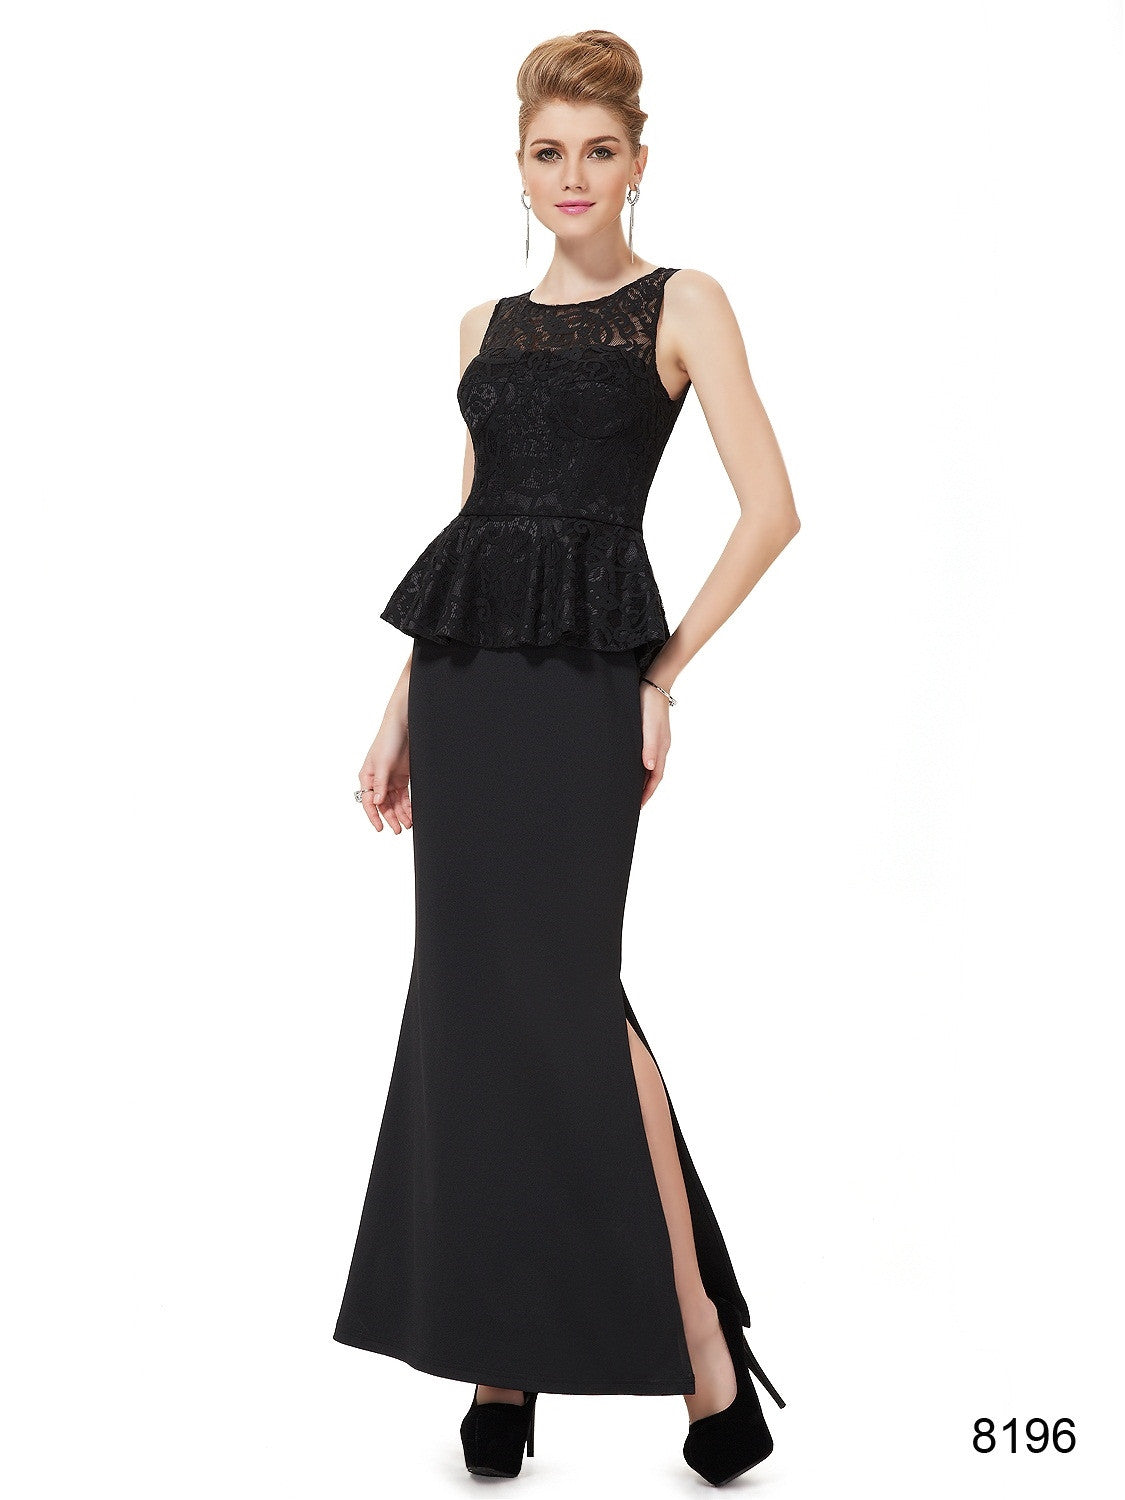 Sleeveless Black Evening Dress - O'beige